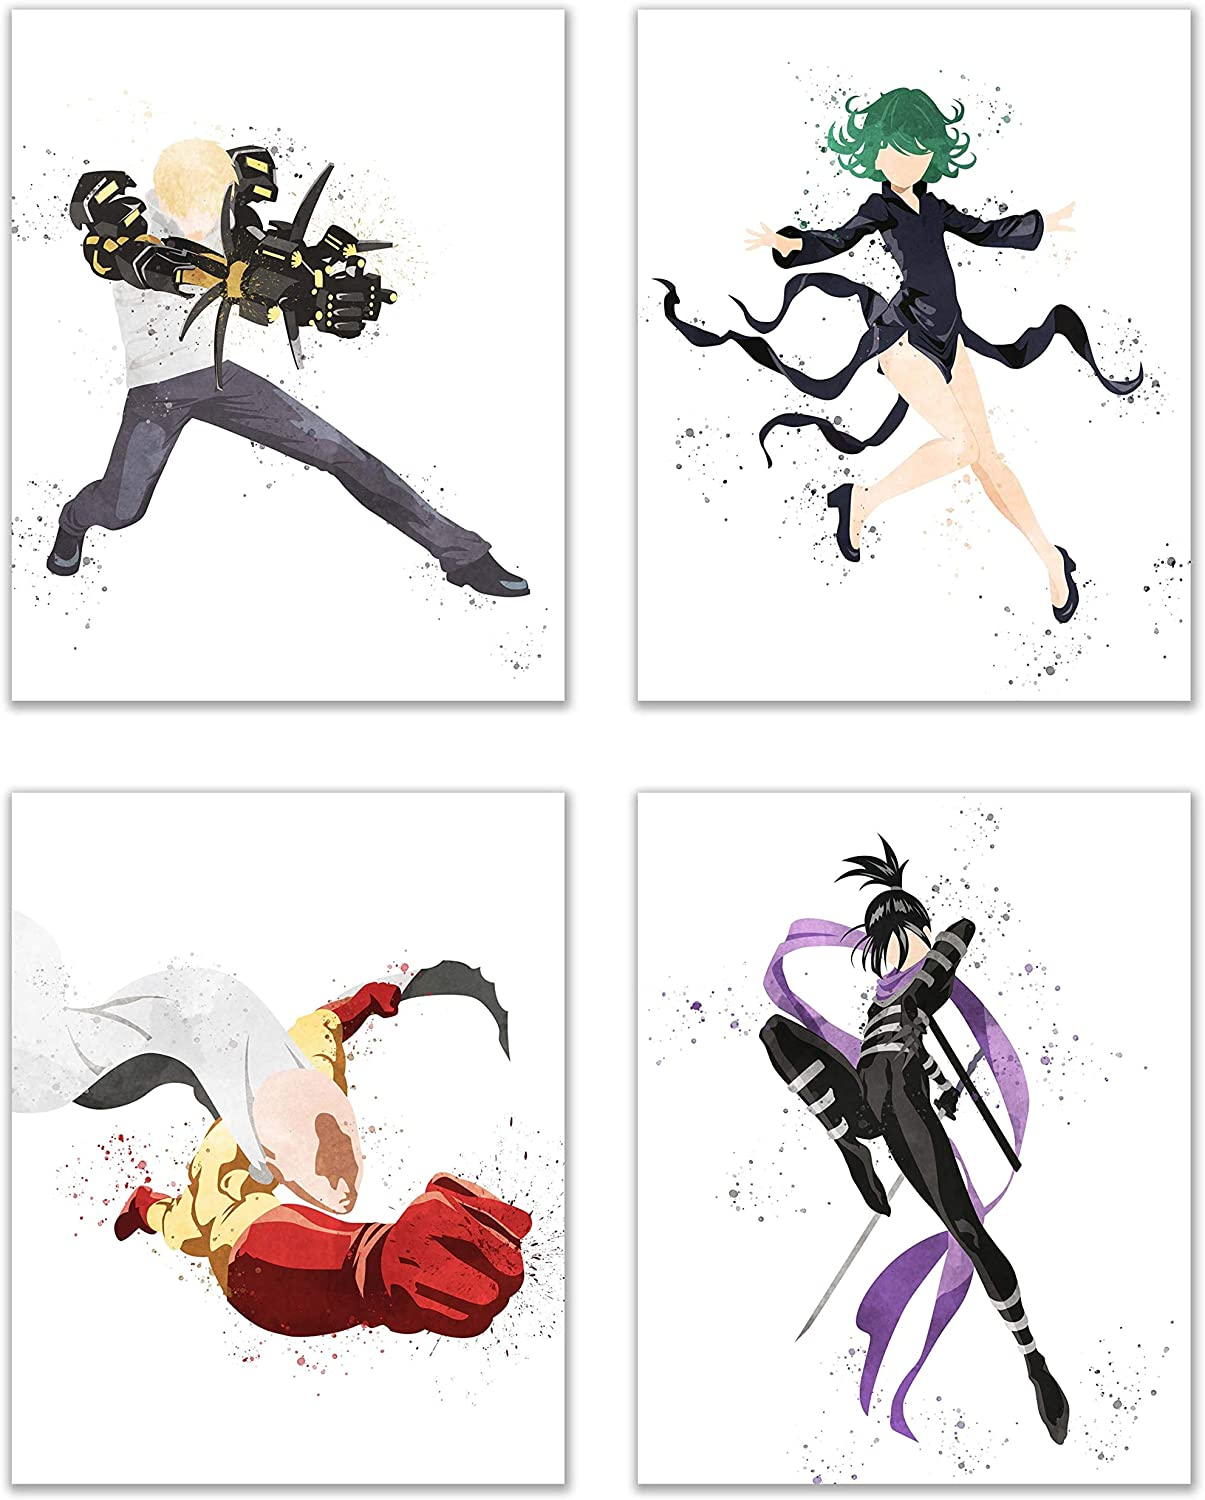 Watercolor One Punch Man Poster Prints - Set of 4 (8x10) Glossy Shonen Anime Manga Wall Art Decor - Saitama - Genos - Sonic - Tatsumaki (Tornado)